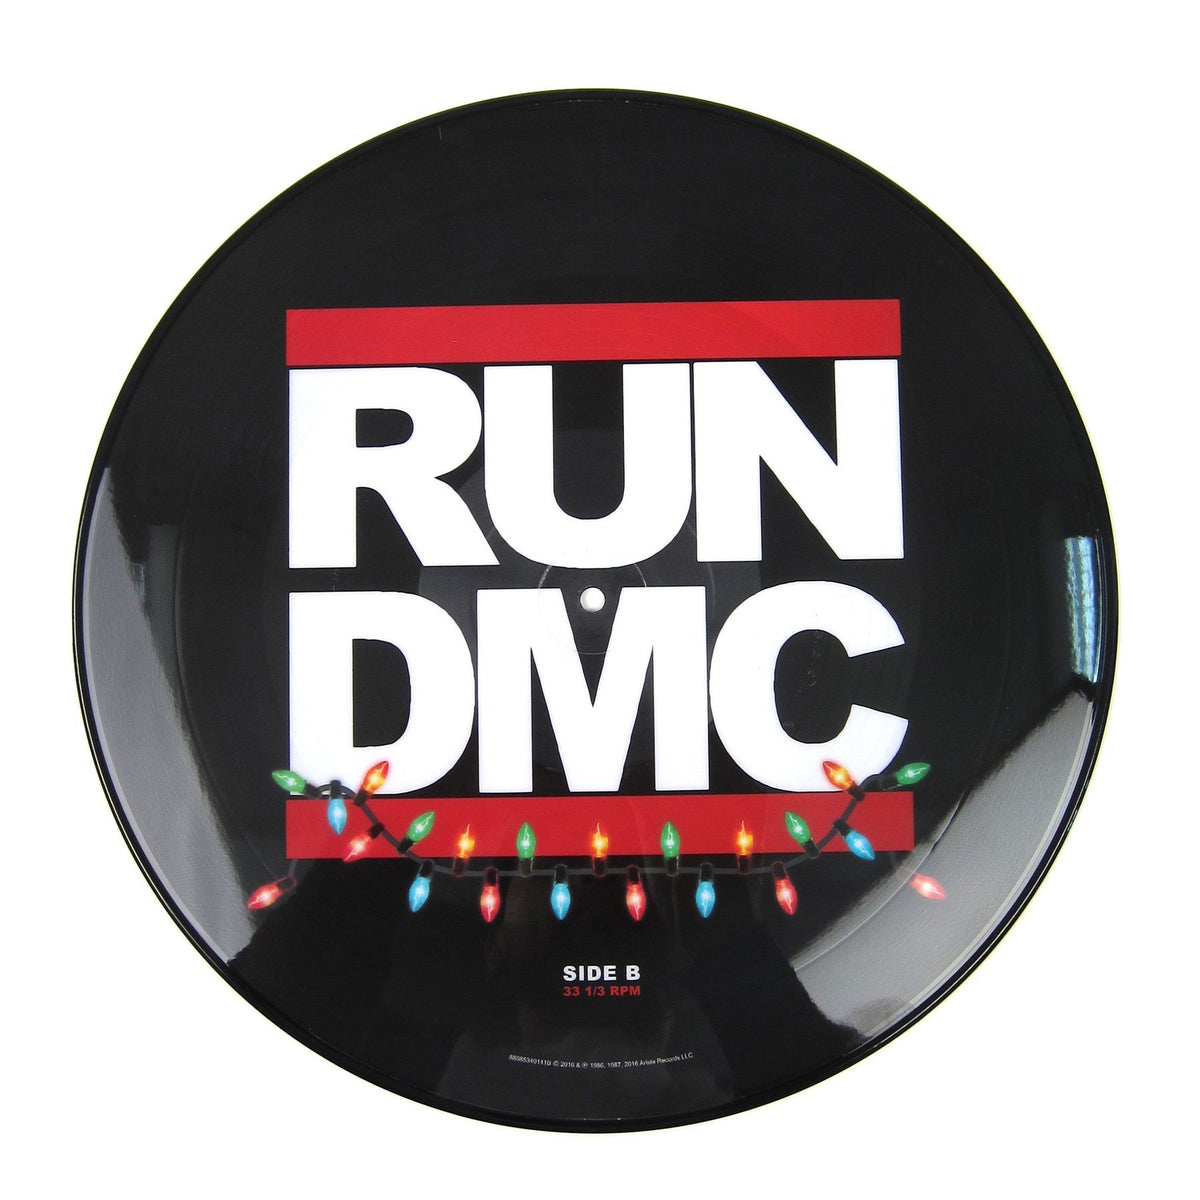 Run Dmc Christmas.Run Dmc Christmas In Hollis Peter Piper Limited 12 Inch Picture Disc